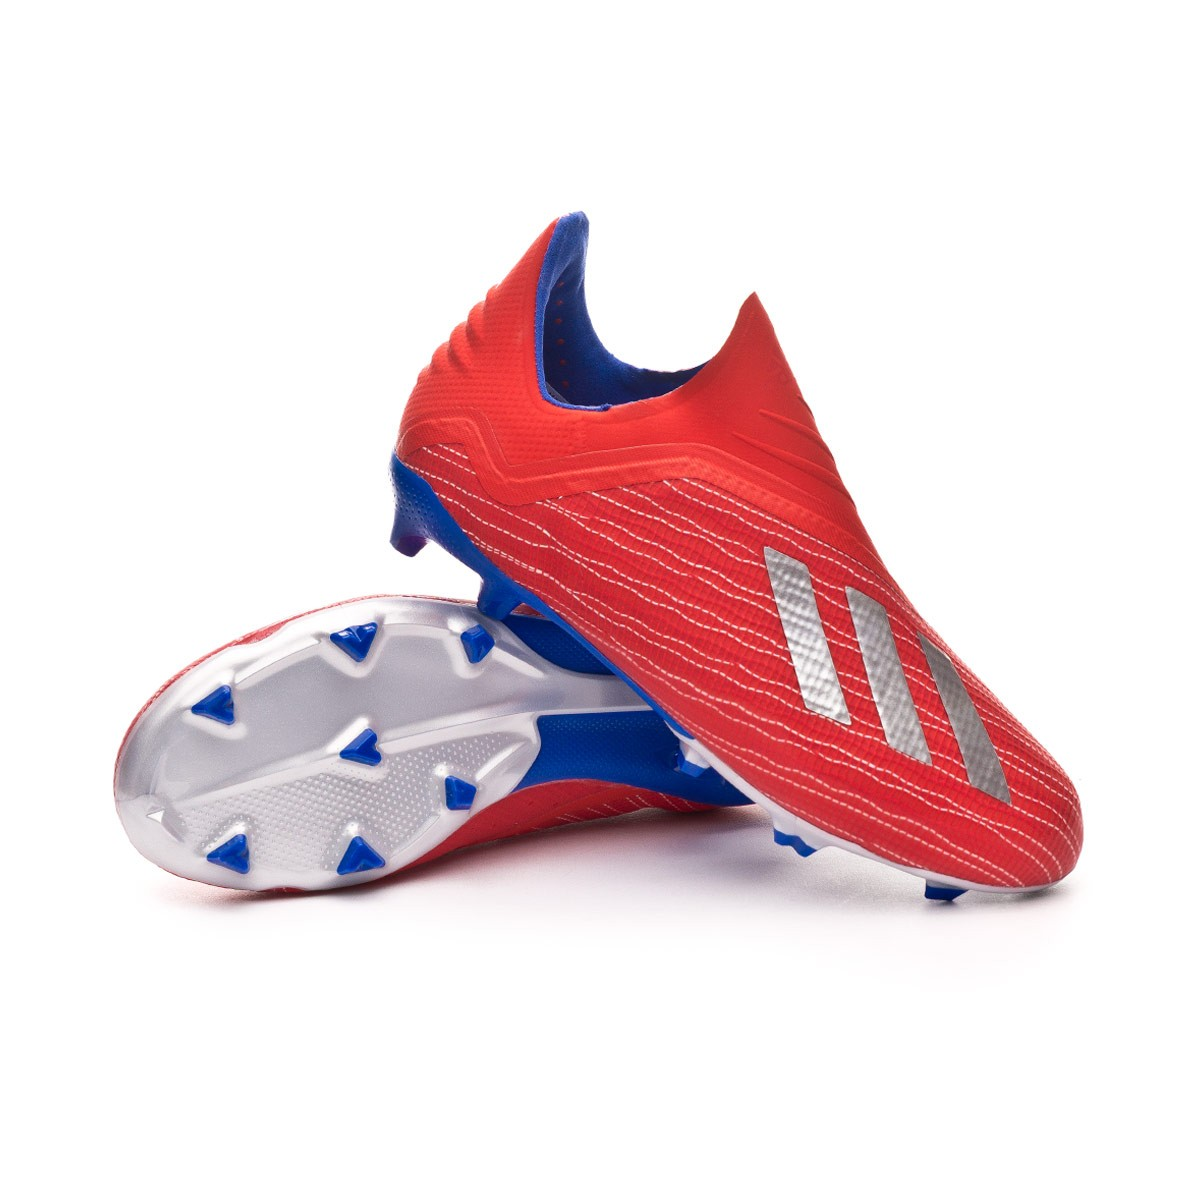 Metallic Bold Active Adidas Silver 18Fg X Junior Red Scarpe Blue RjL435Aq